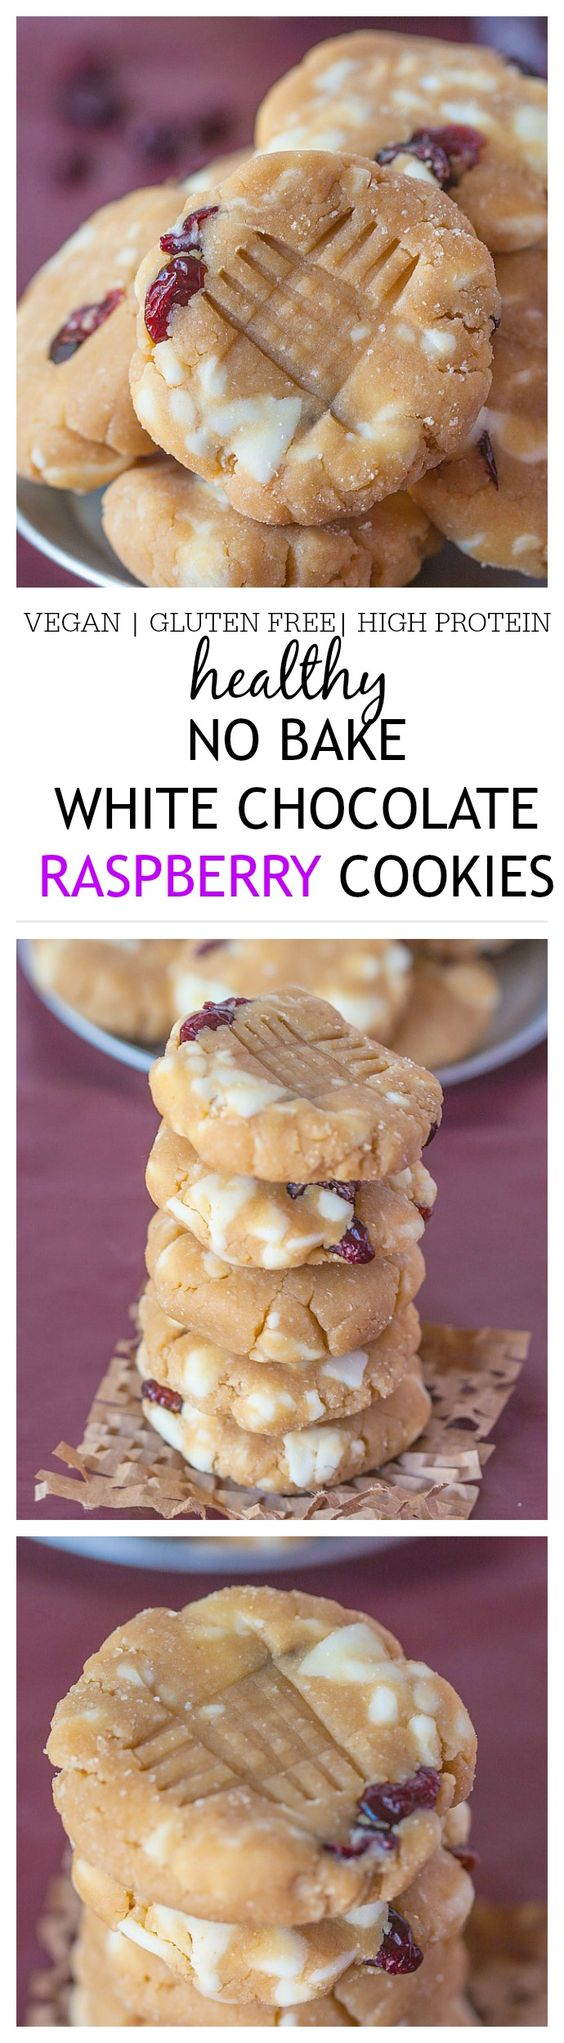 Healthy No Bake White Chocolate Raspberry Protein Cookies- Delicious, easy and ready in 10 minutes, these will be your new favourite snack!: